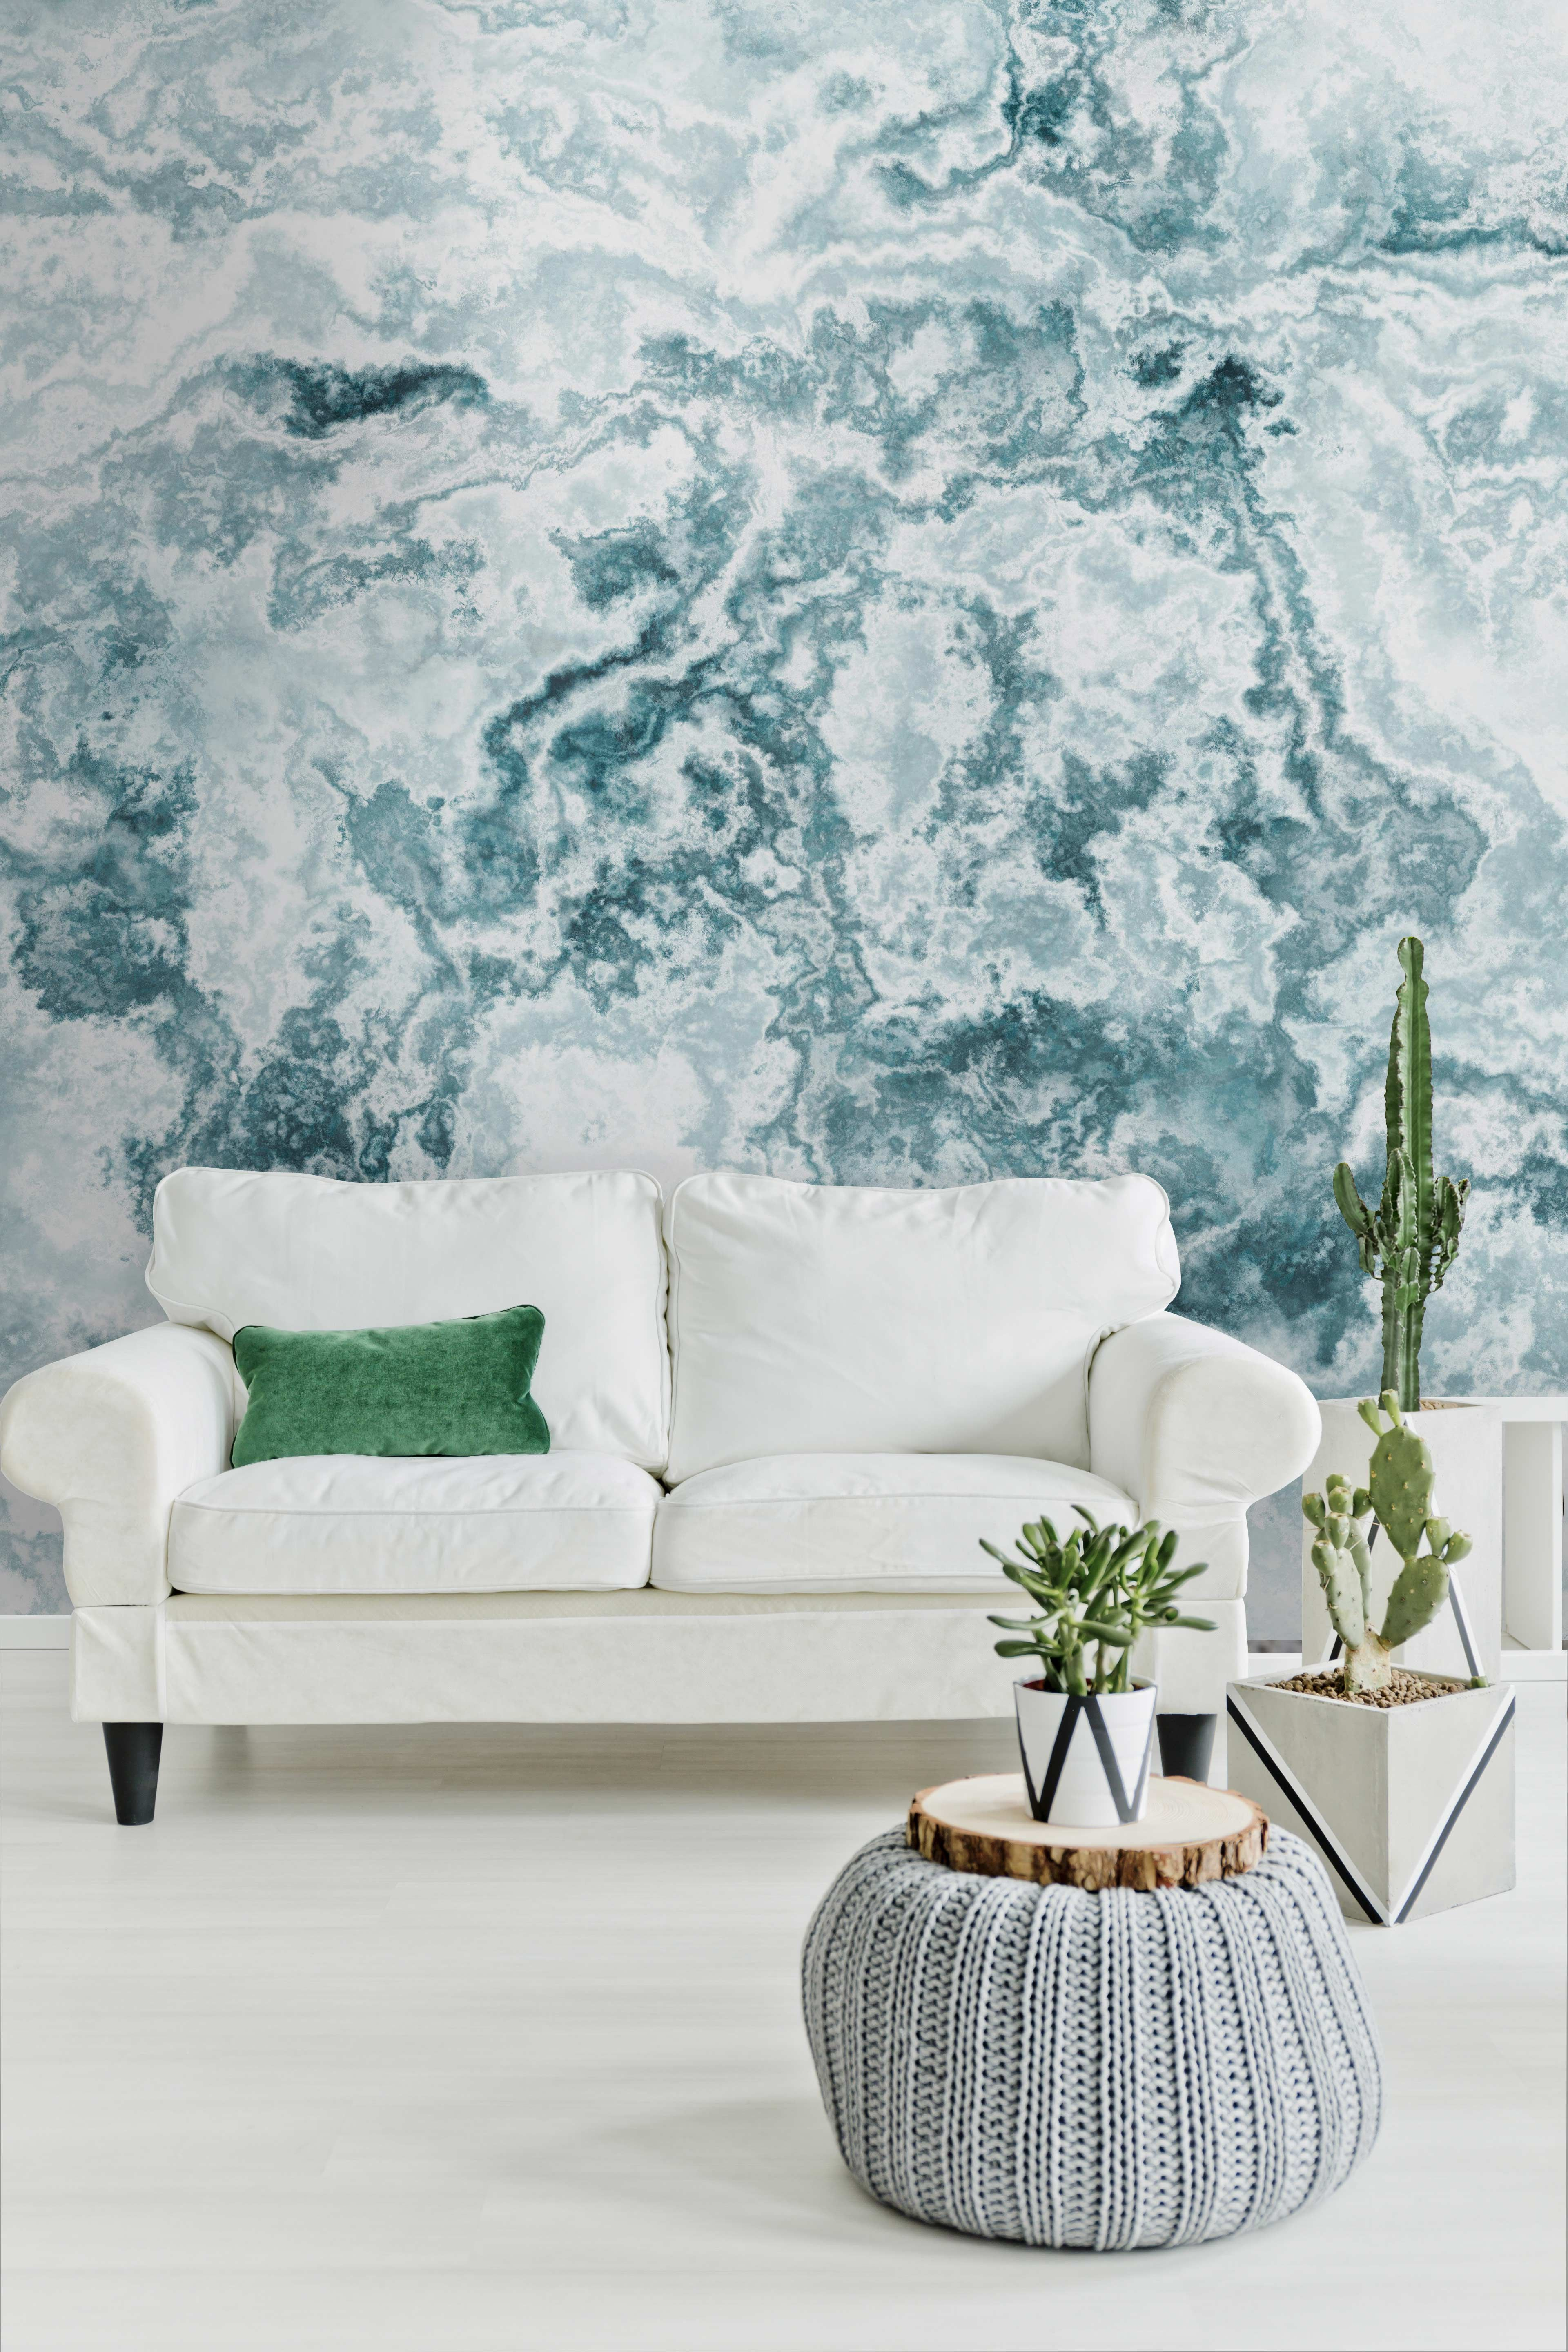 Green Marble Self Adhesive Wallpaper Marble Wallpaper Concrete Interiors White Marble